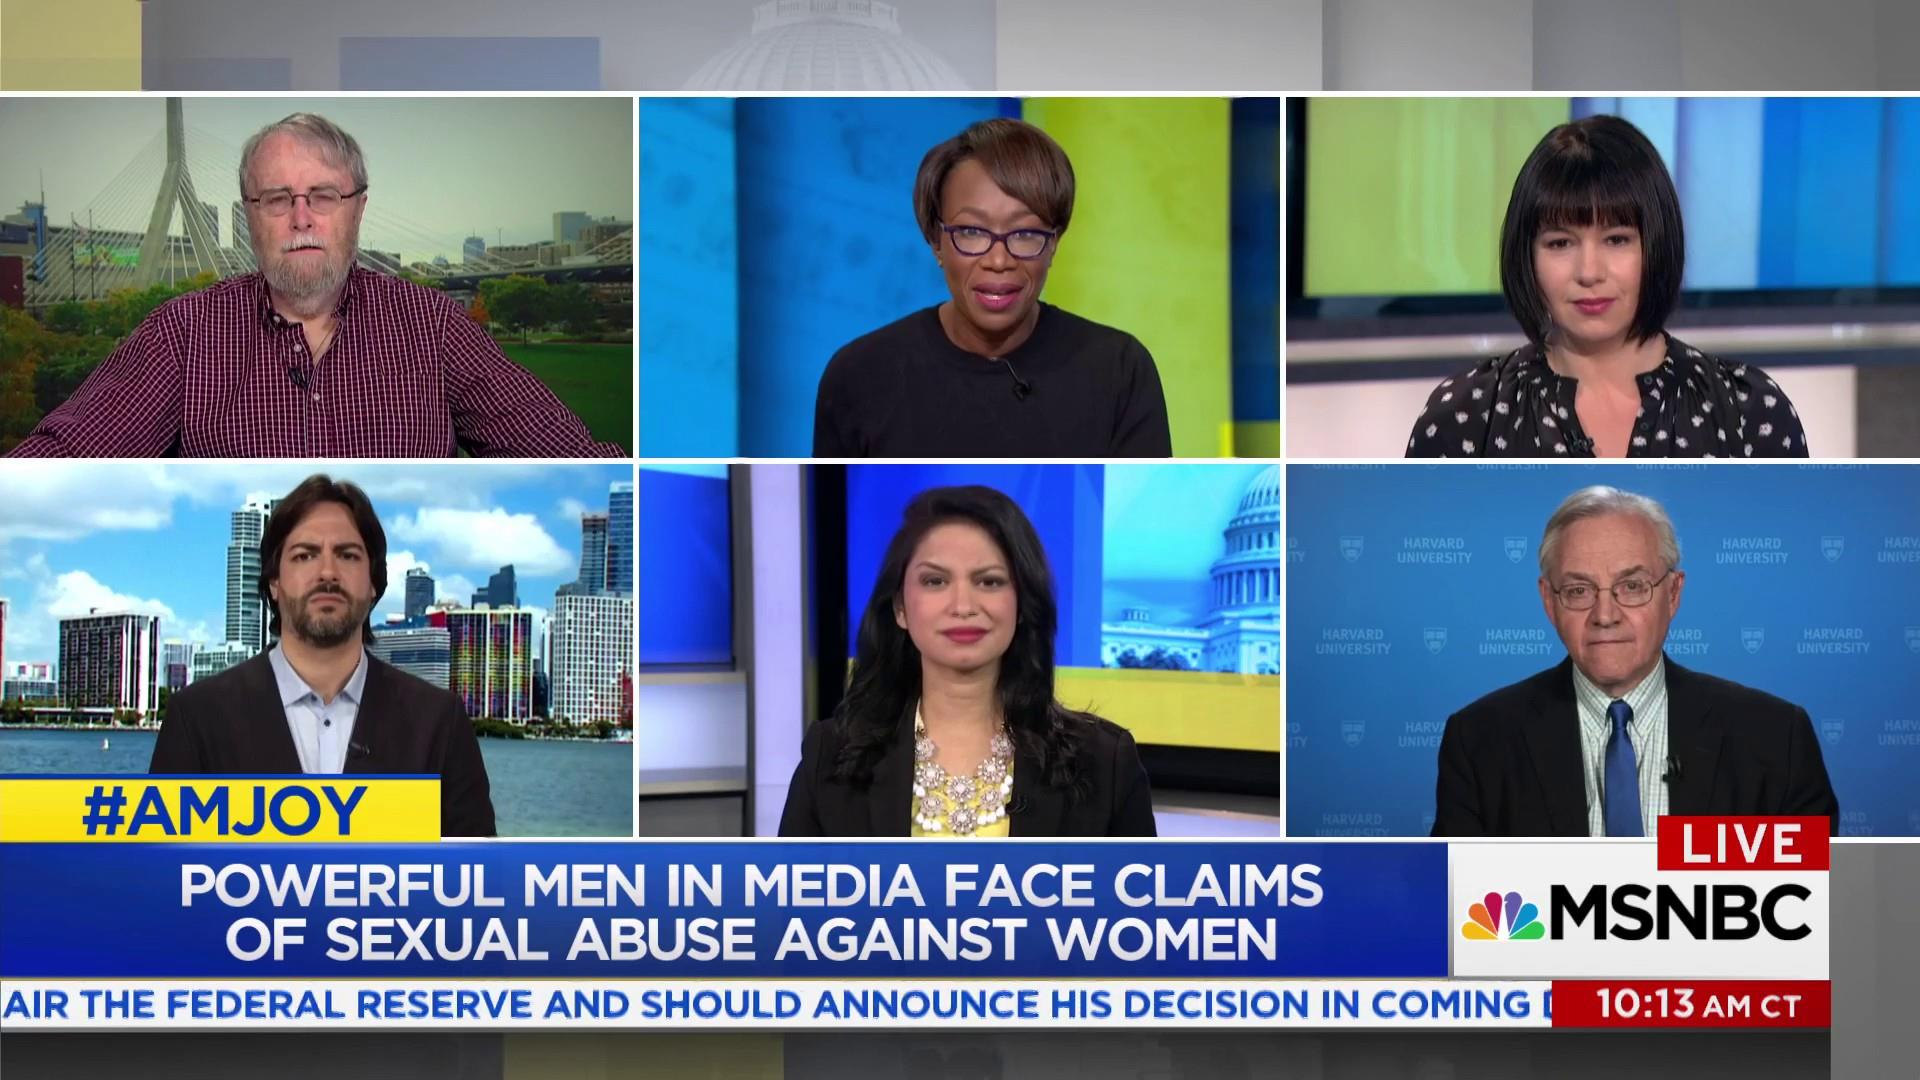 Powerful men in media face claims of...